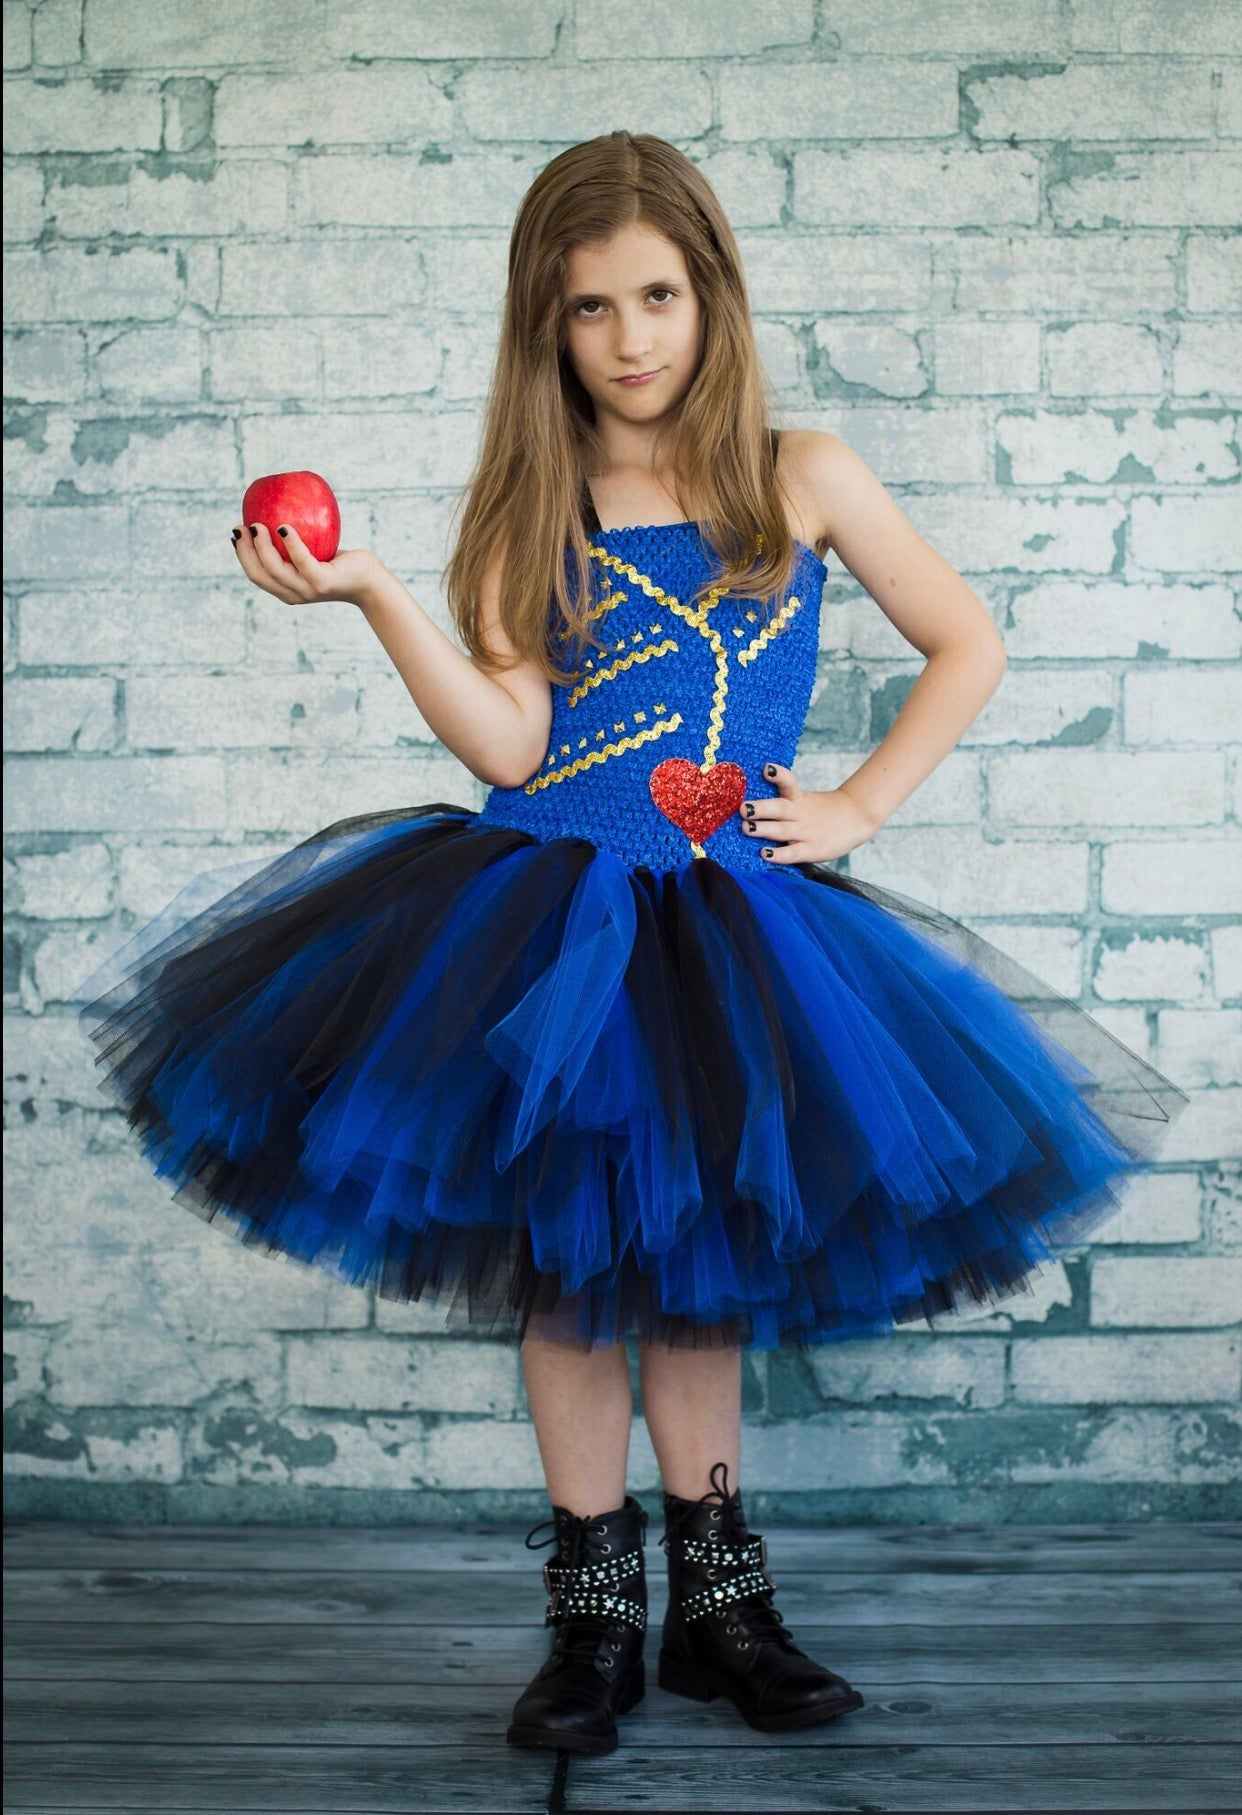 Evie Tutu, Evie Tutu Dress, Girls Evie Tutu, Descendants Tutu, Descendants  2 Tutu, Descendants, Evie, Mal, Uma, Descendants Birthday, Descendants